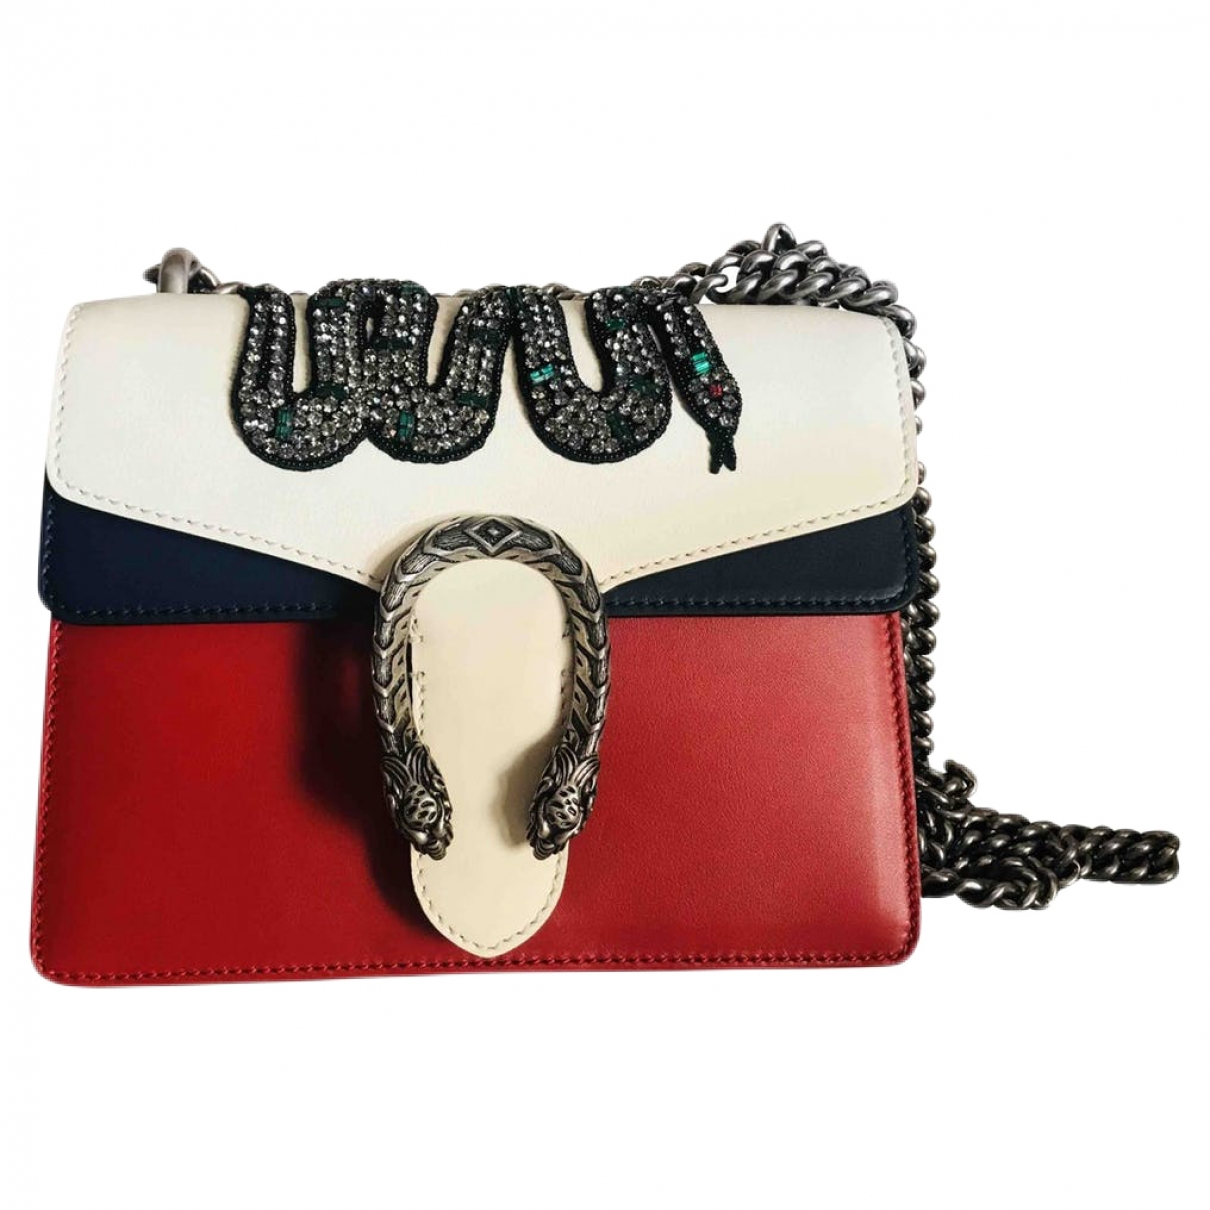 Gucci Dionysus Red Leather handbag for Women \N